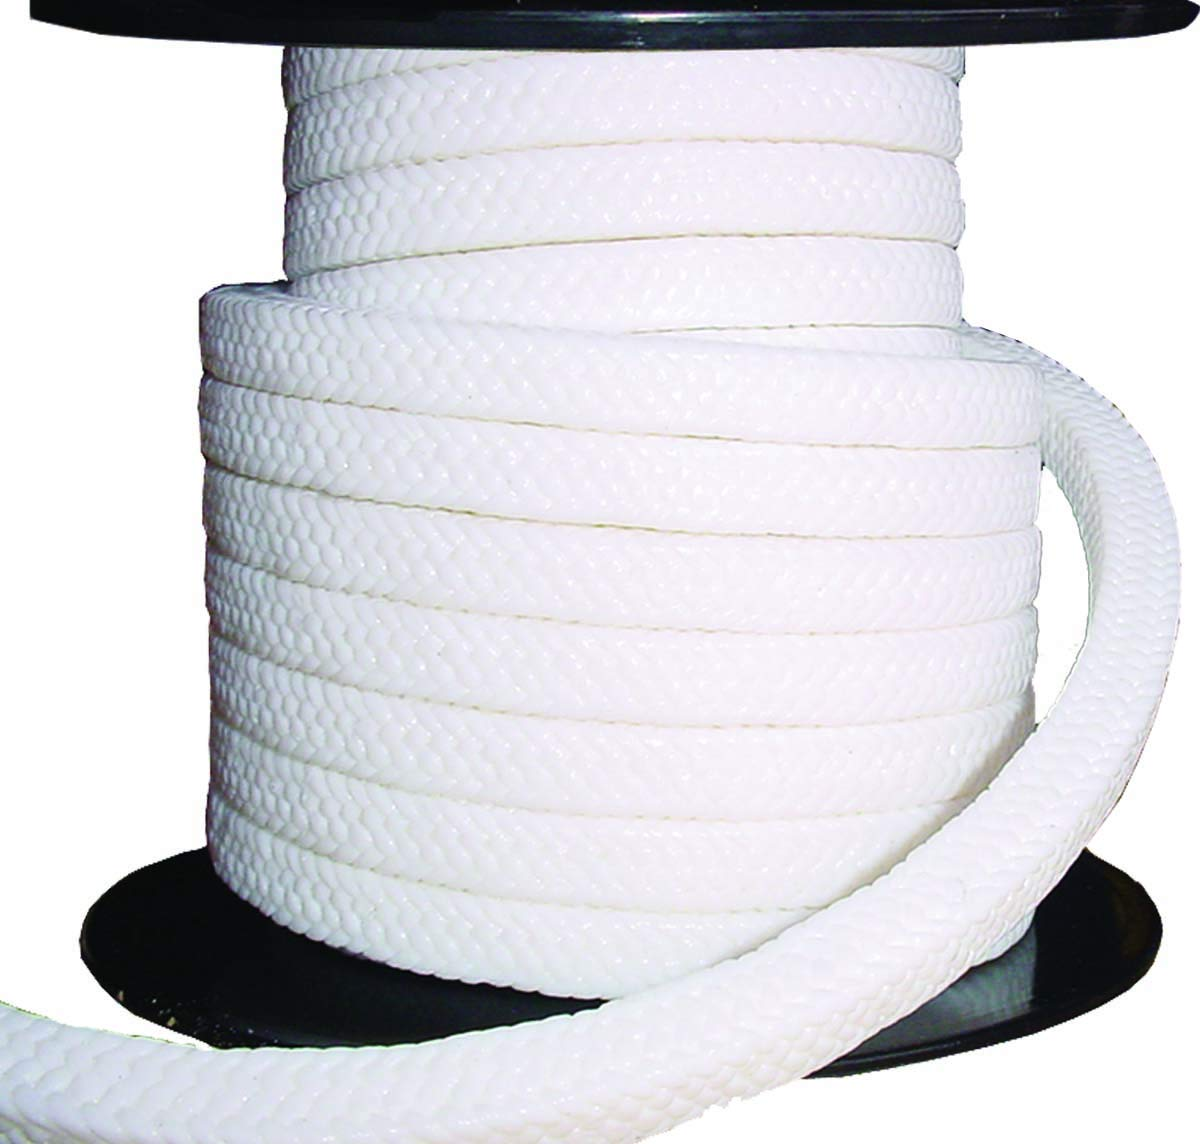 Minseal 1400L - PTFE Braided Compression Packing, Clean White, Oil Lubricated, for Pump Valve or Mechanical Seal, 1/8'' x 1/8'', 8 feet by Sealwiz